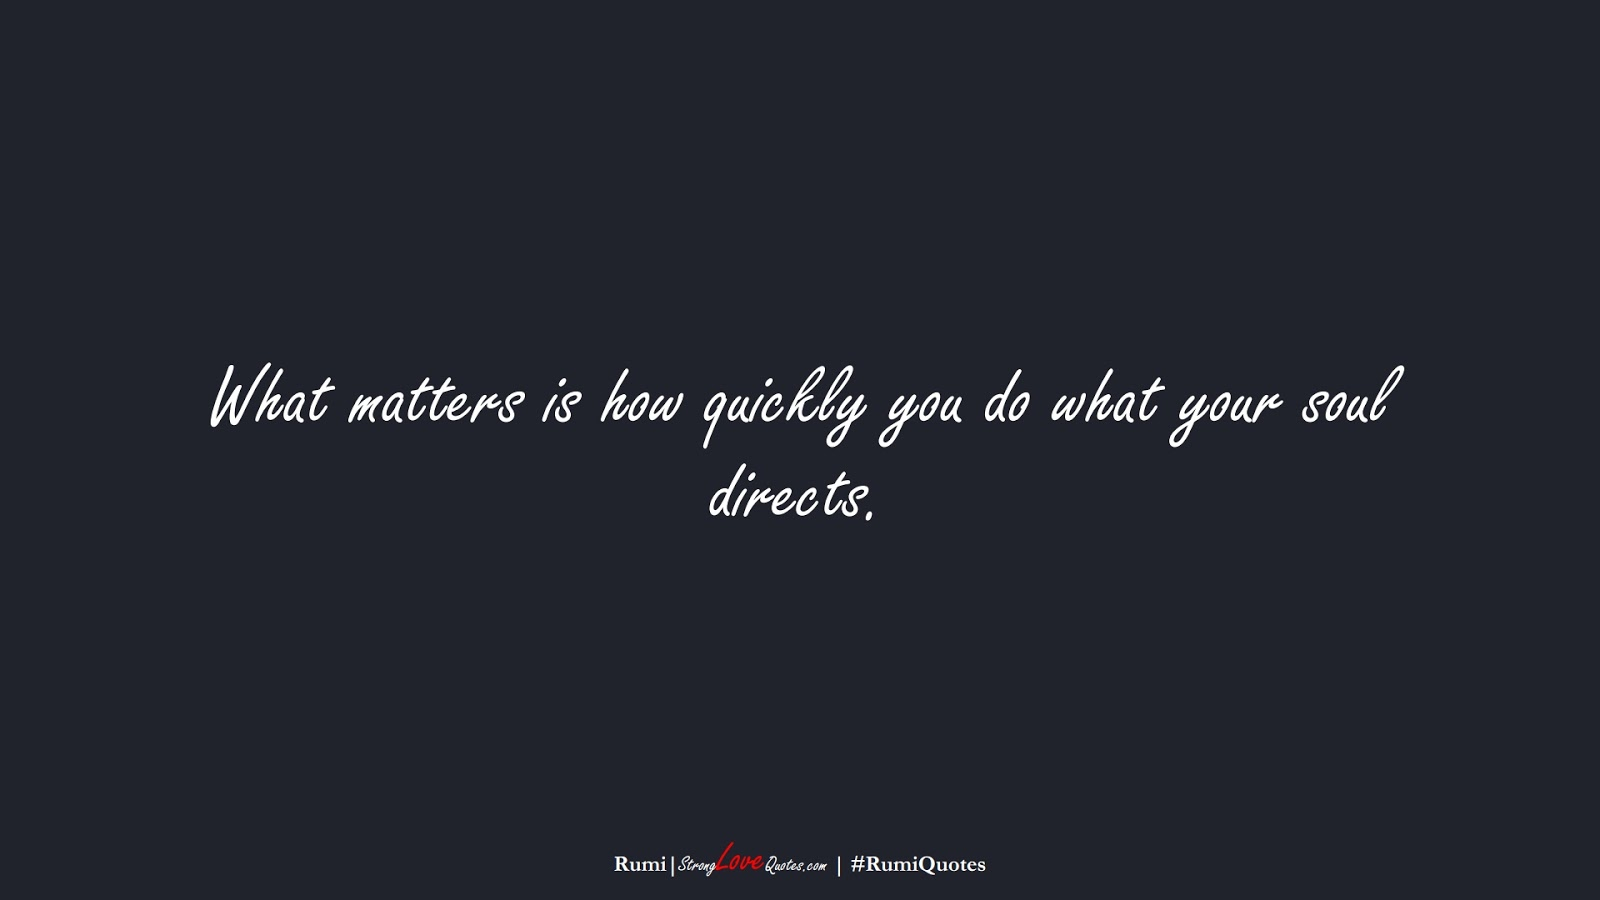 What matters is how quickly you do what your soul directs. (Rumi);  #RumiQuotes